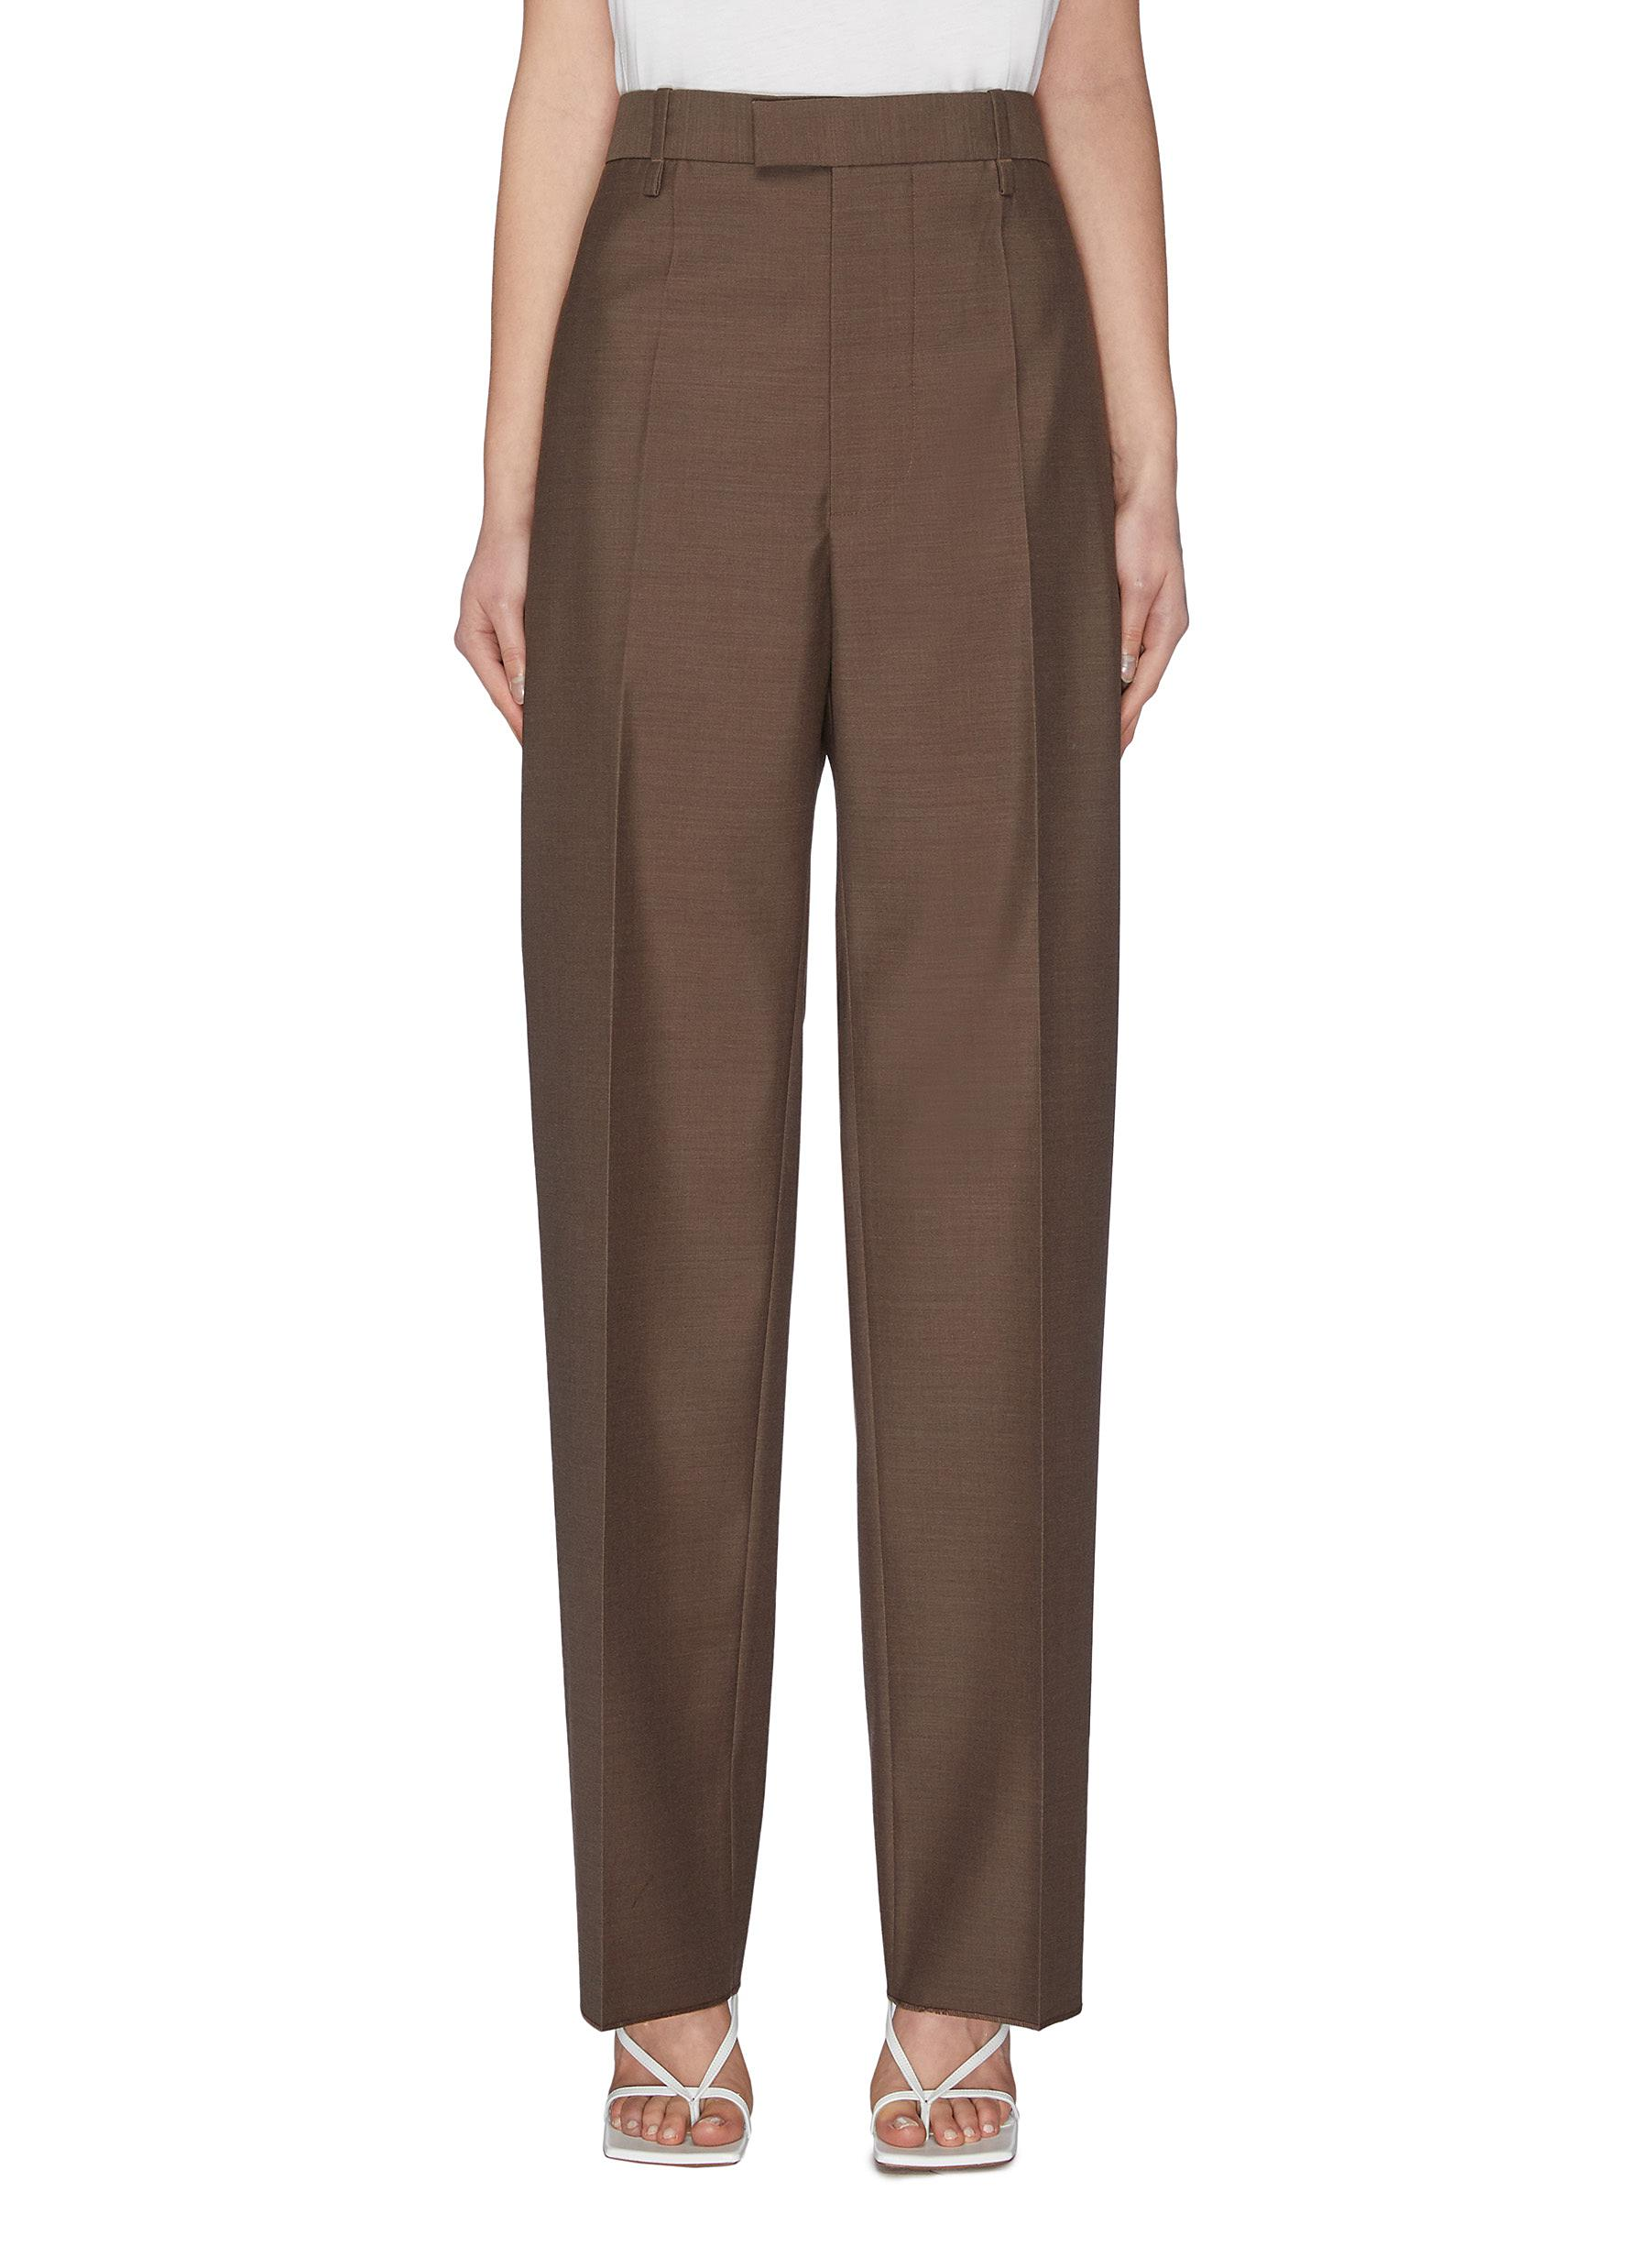 shop Bottega Veneta High waist tailored pants online